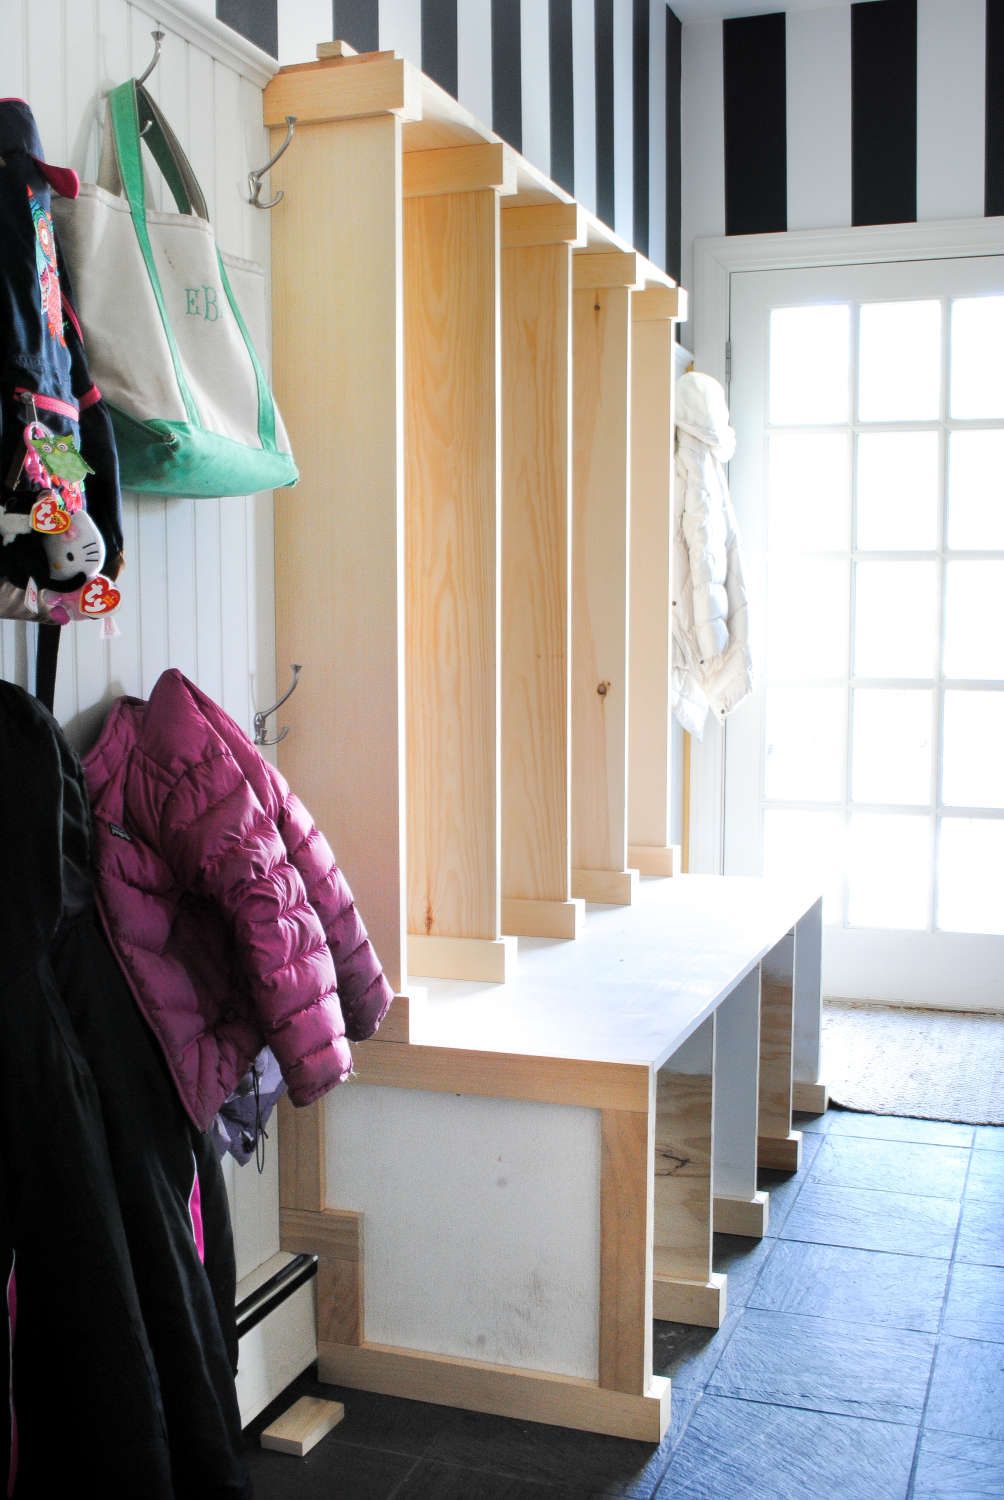 Diy Mudroom Lockers Cubbies Made With Plywood And Pine Boards